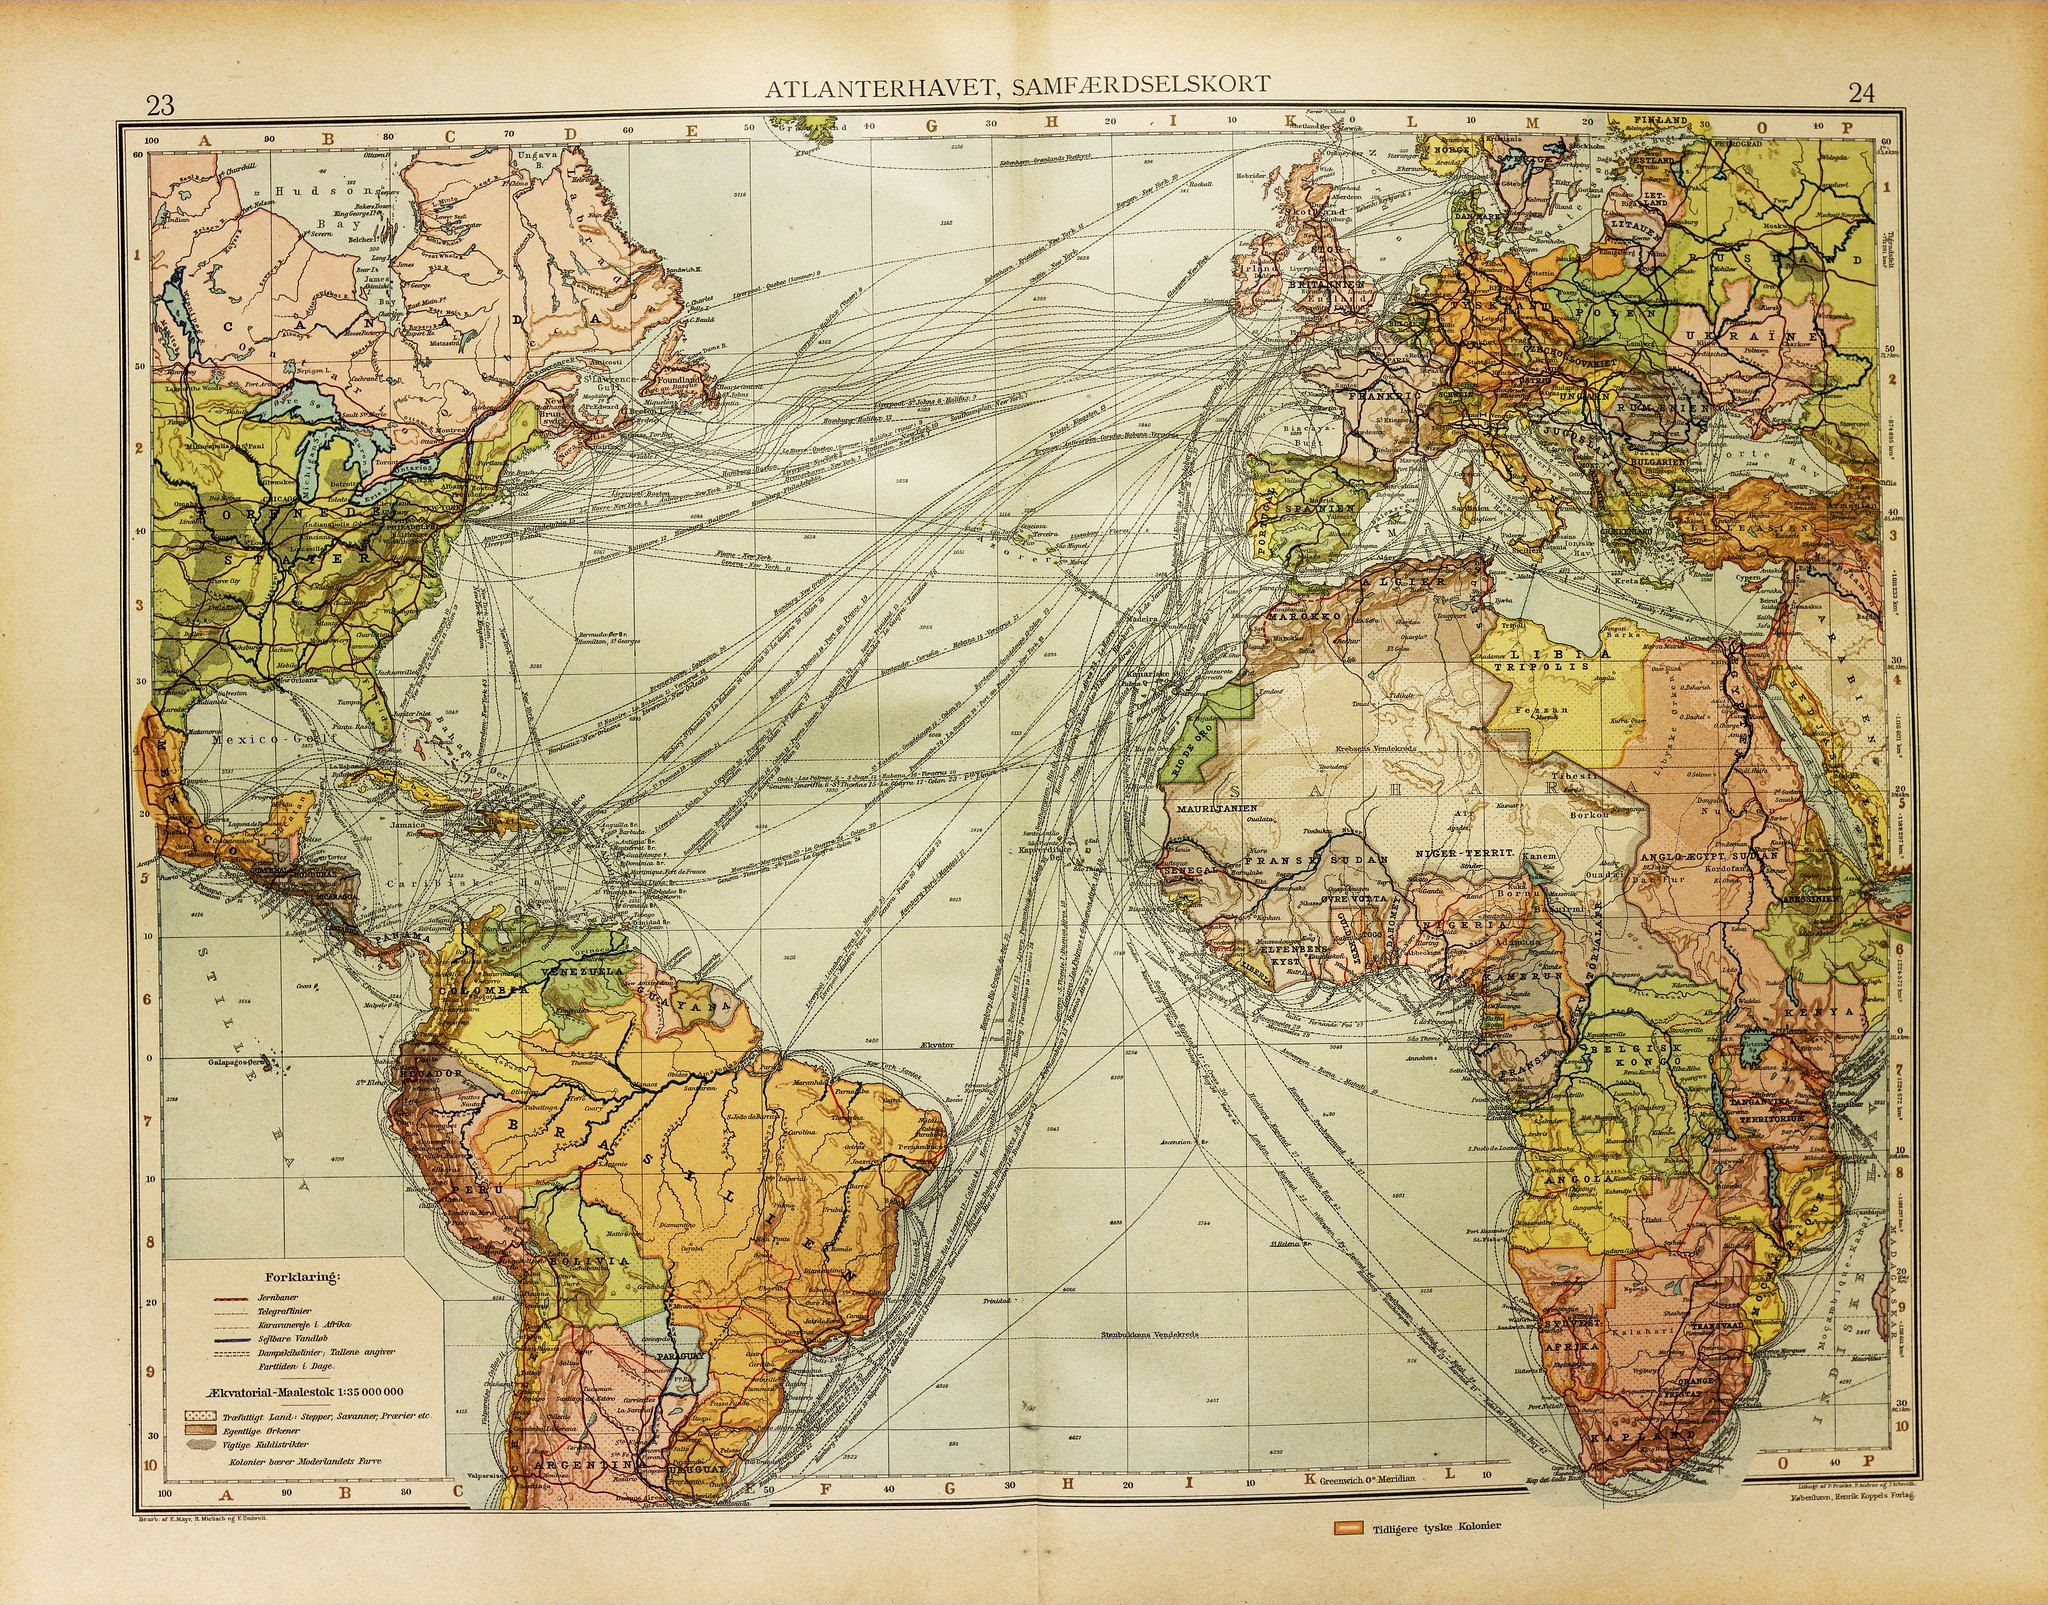 Sailing routes and travel times across the atlantic in 1923 sailing routes and travel times across the atlantic in 1923 x wallpaper background for ipad mini air 2 pro laptop gumiabroncs Choice Image